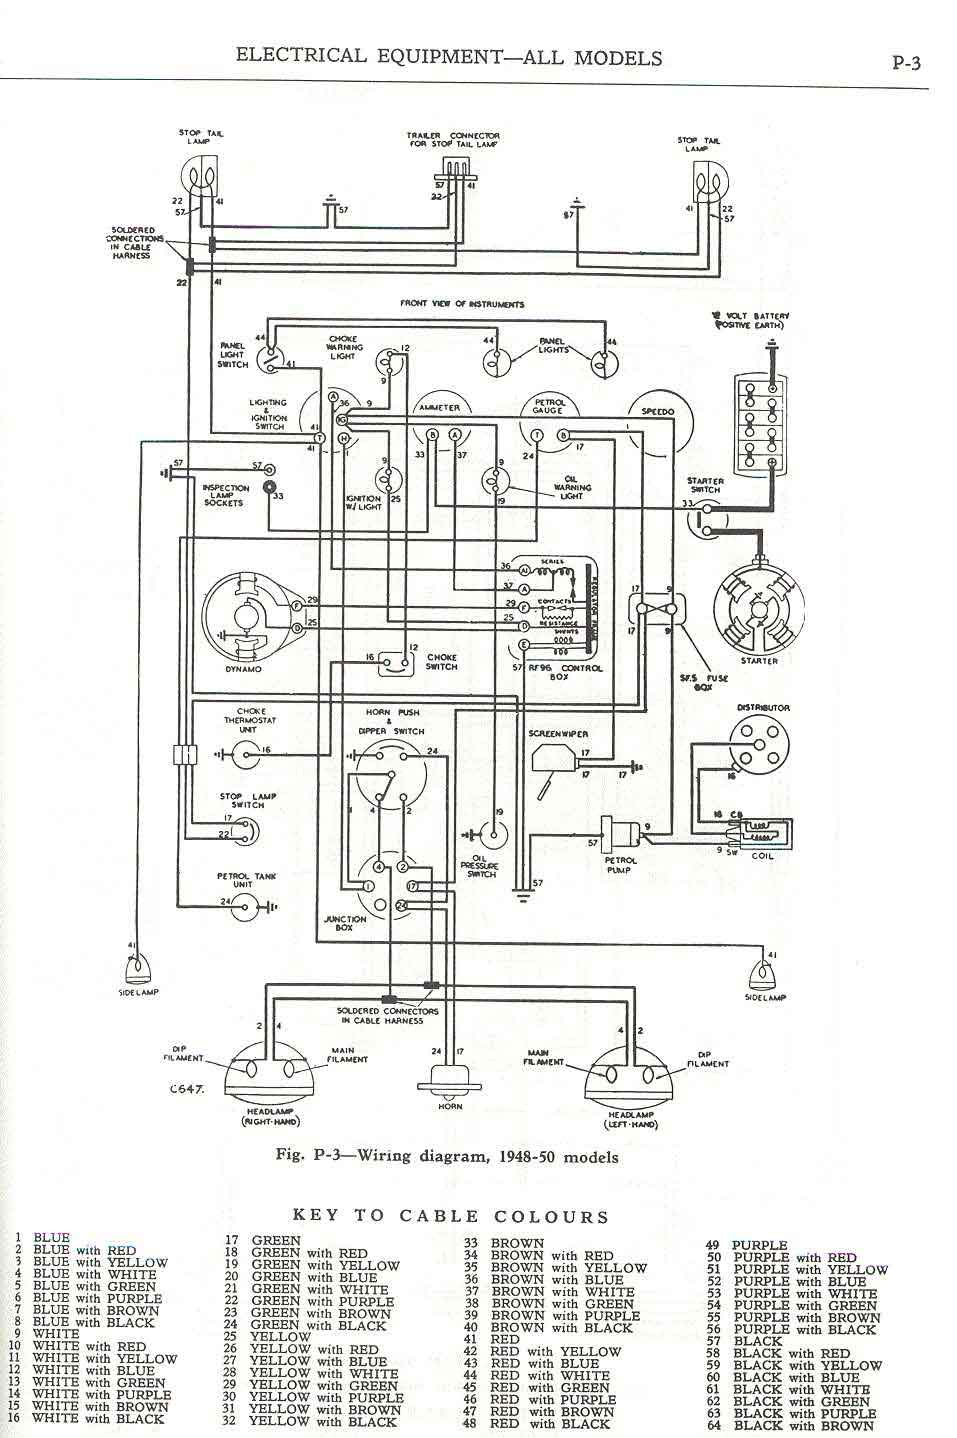 1994 Land Rover Discovery Engine Diagram Reveolution Of Wiring Kia Magentis 2010 Compartment Fuse Box 2 Free Image 2004 Schematic Schematics For 2002